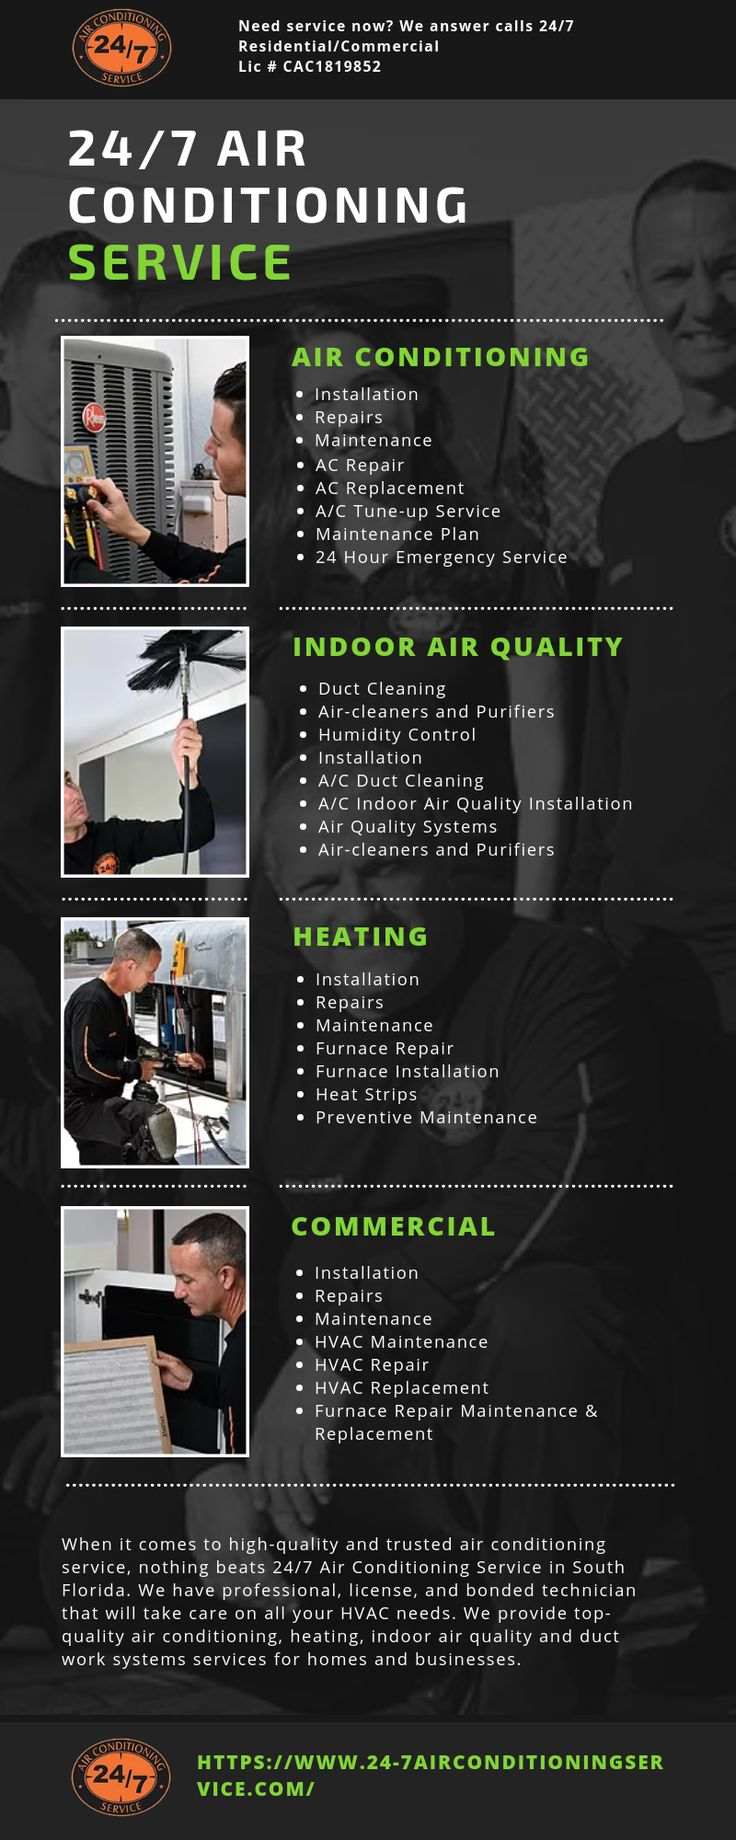 At 24/7 Air Conditioning Service, you can rest assured